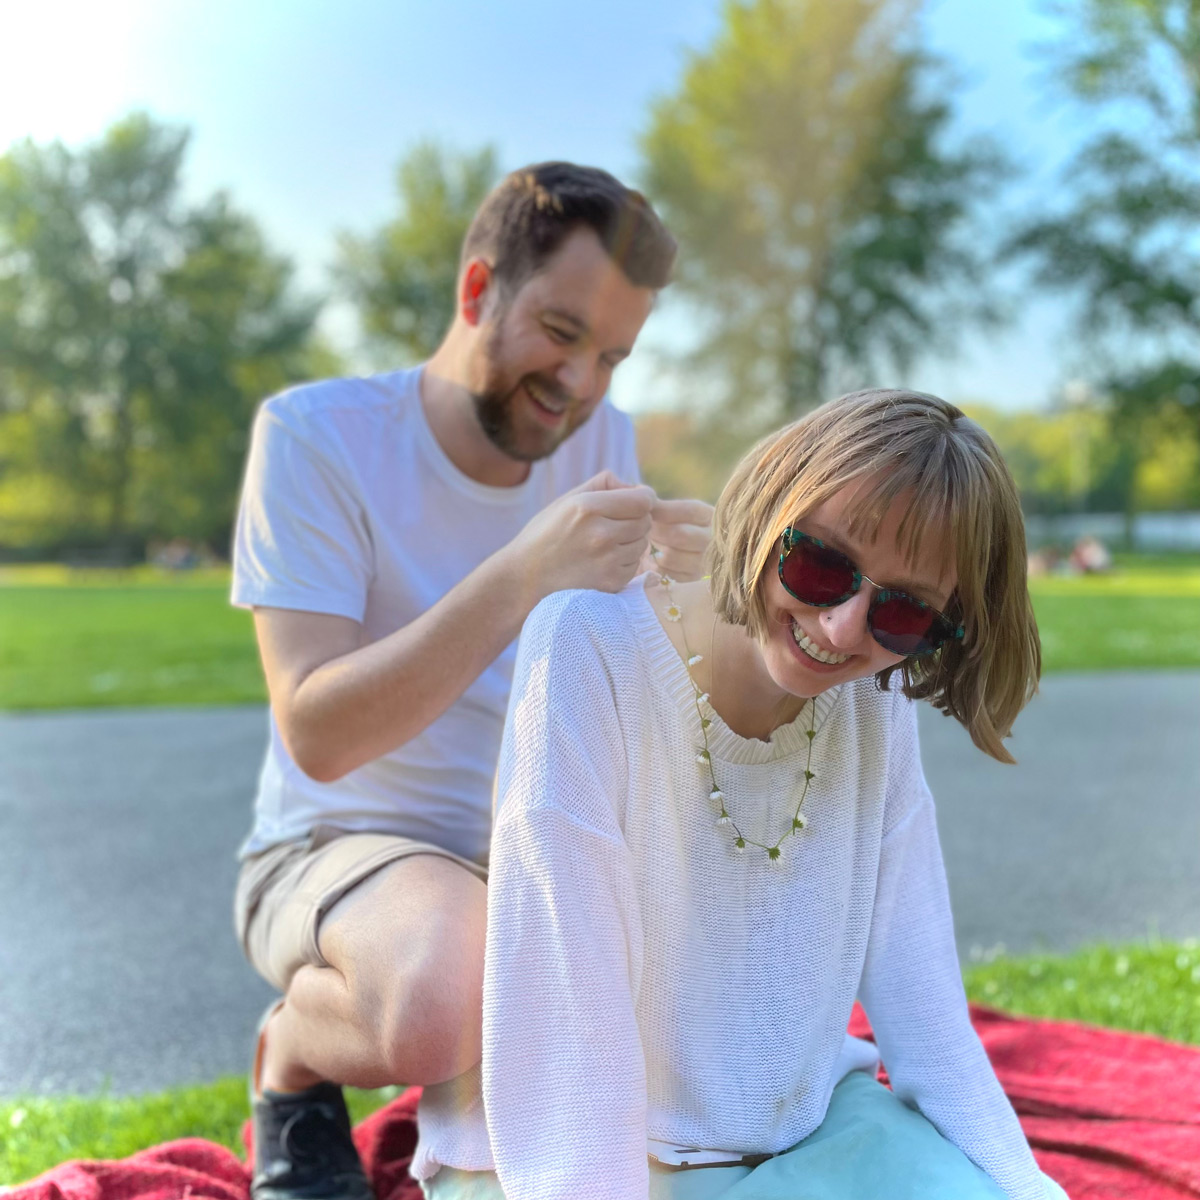 Rowan kneeling down and putting a daisy chain around Charlotte's neck, they're sat on a picnic blanket in a sunny park